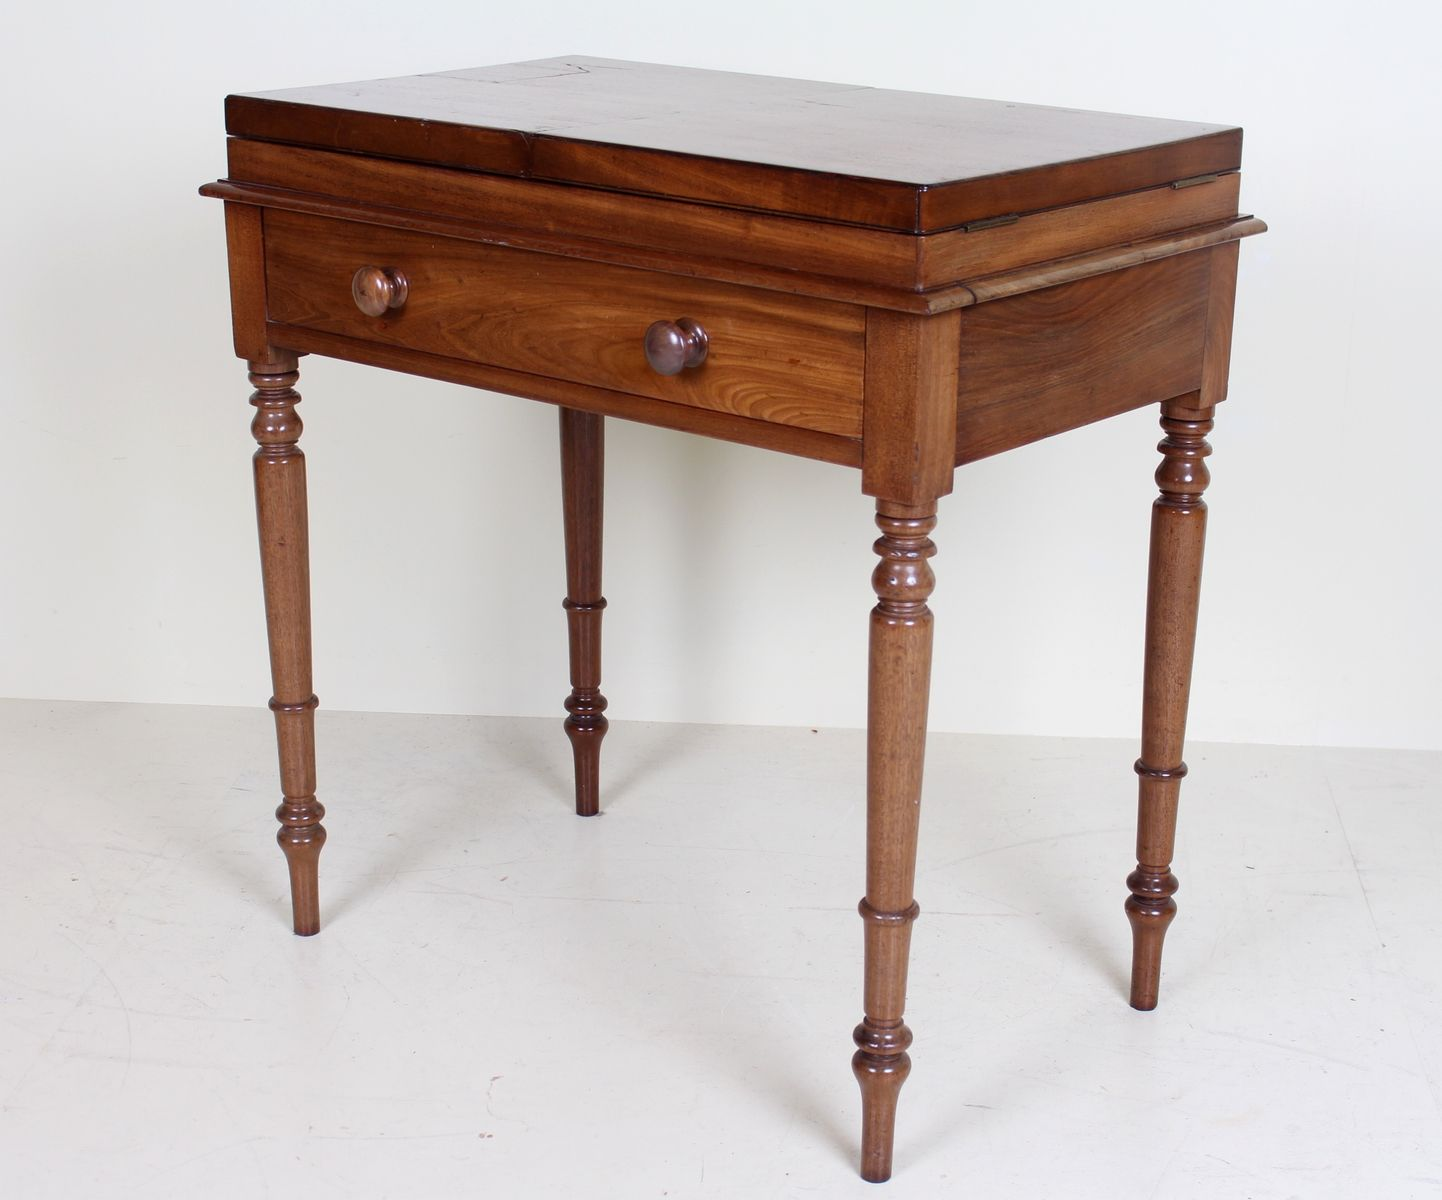 Antique Victorian Fold Out Writing Desk - Antique Victorian Fold Out Writing Desk For Sale At Pamono